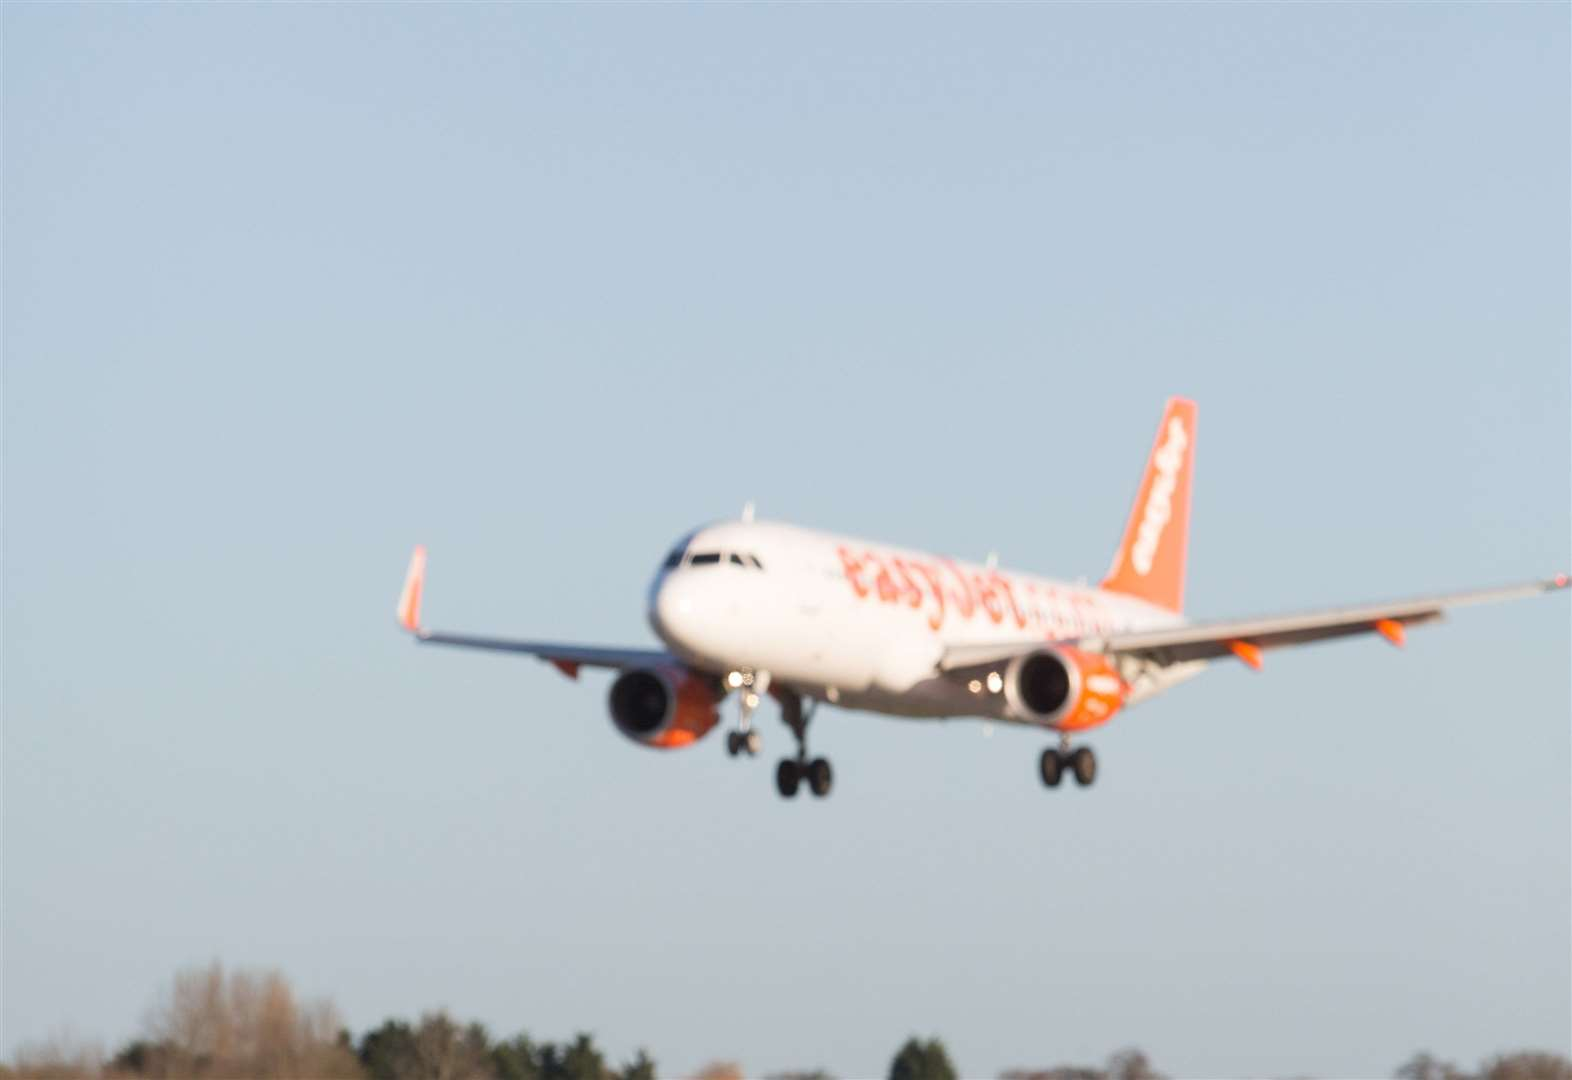 Summer holiday misery ahead at Stansted as strikes threaten easyJet flights